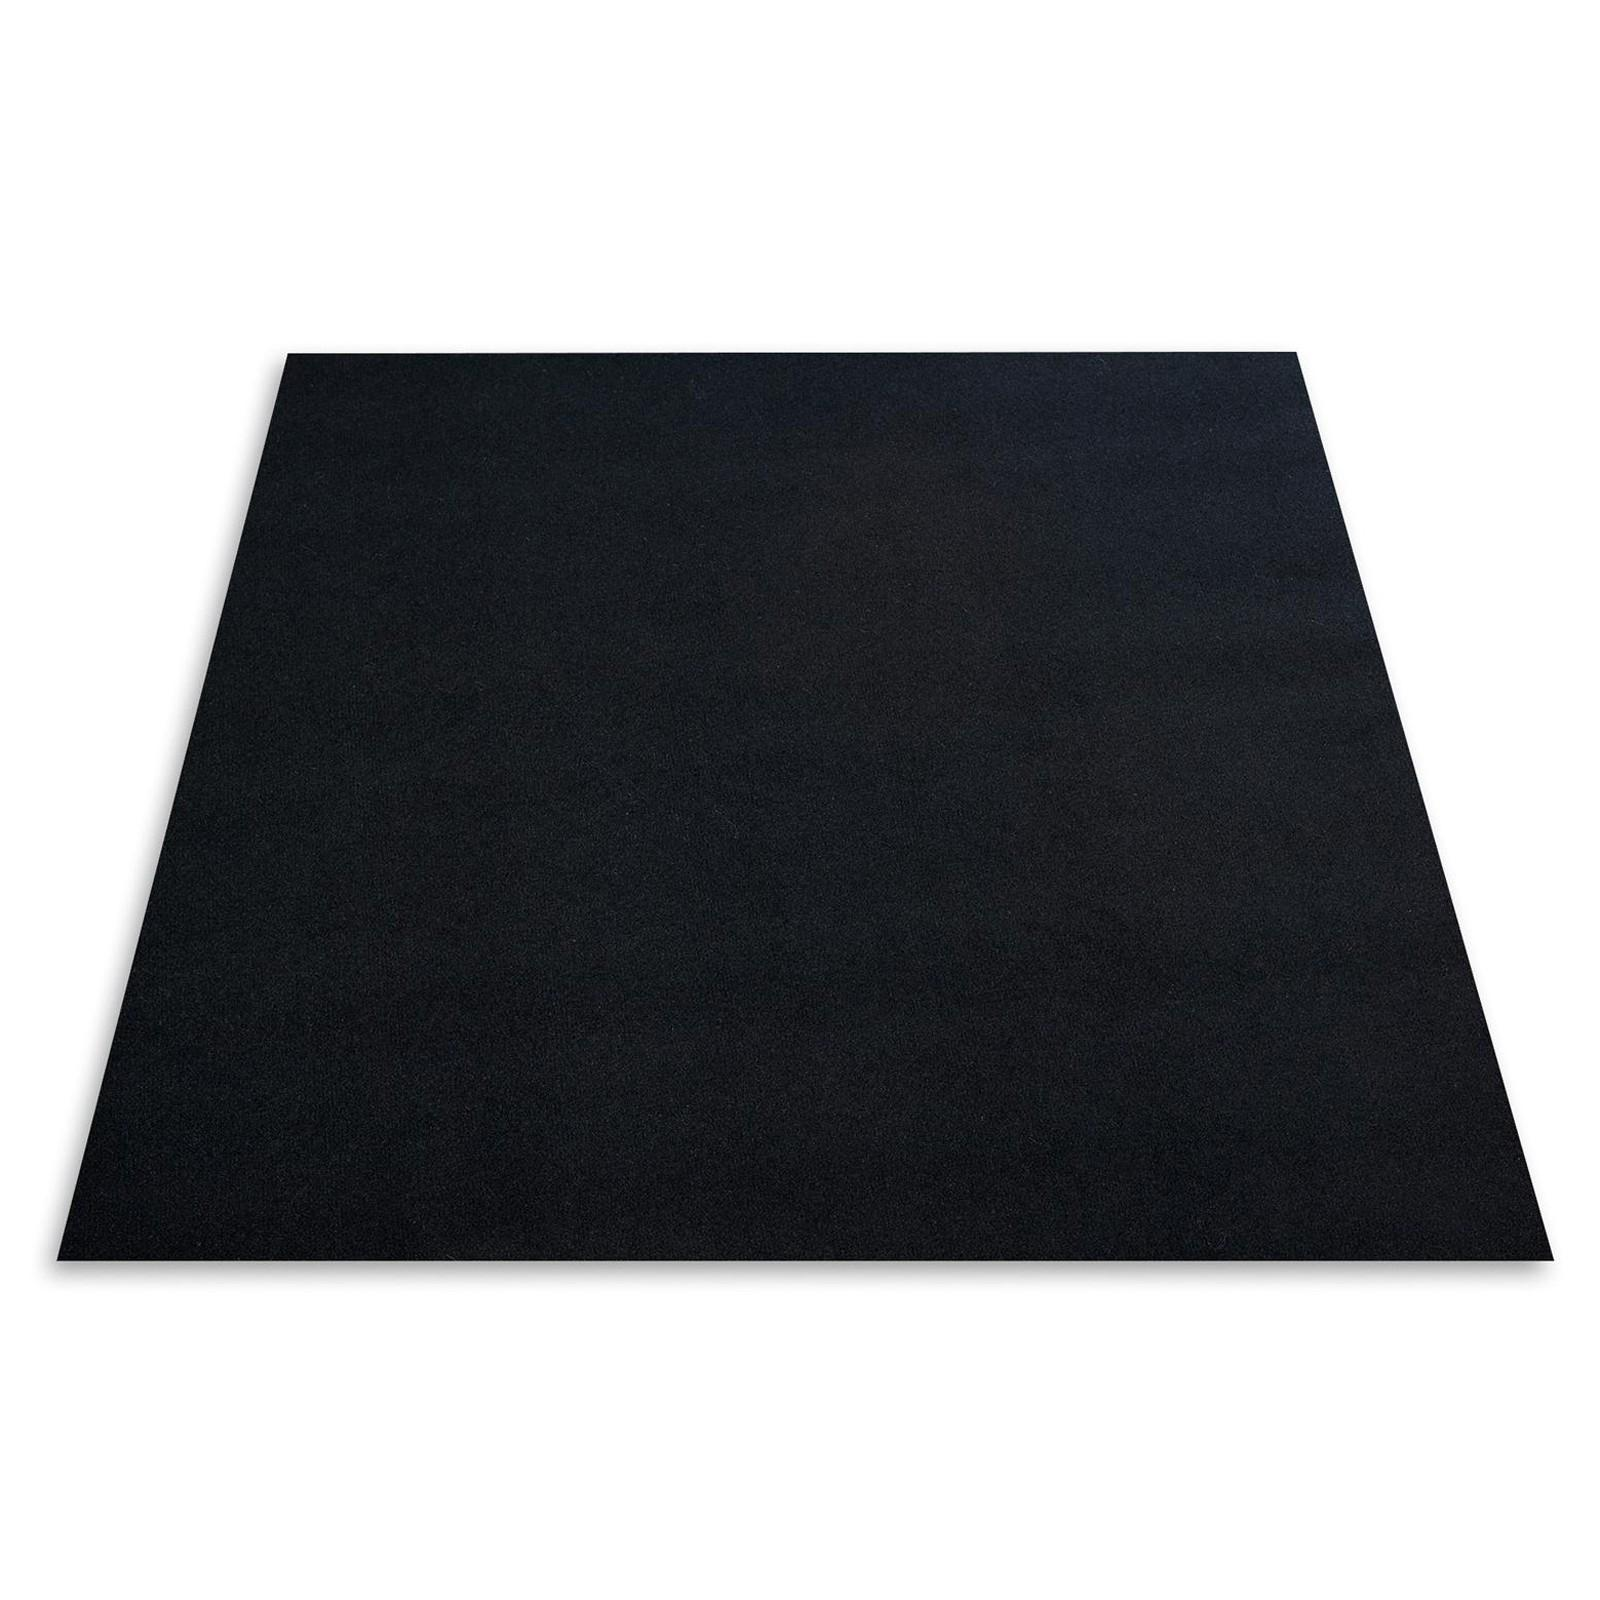 Needle Felt Carpet Destiny Black